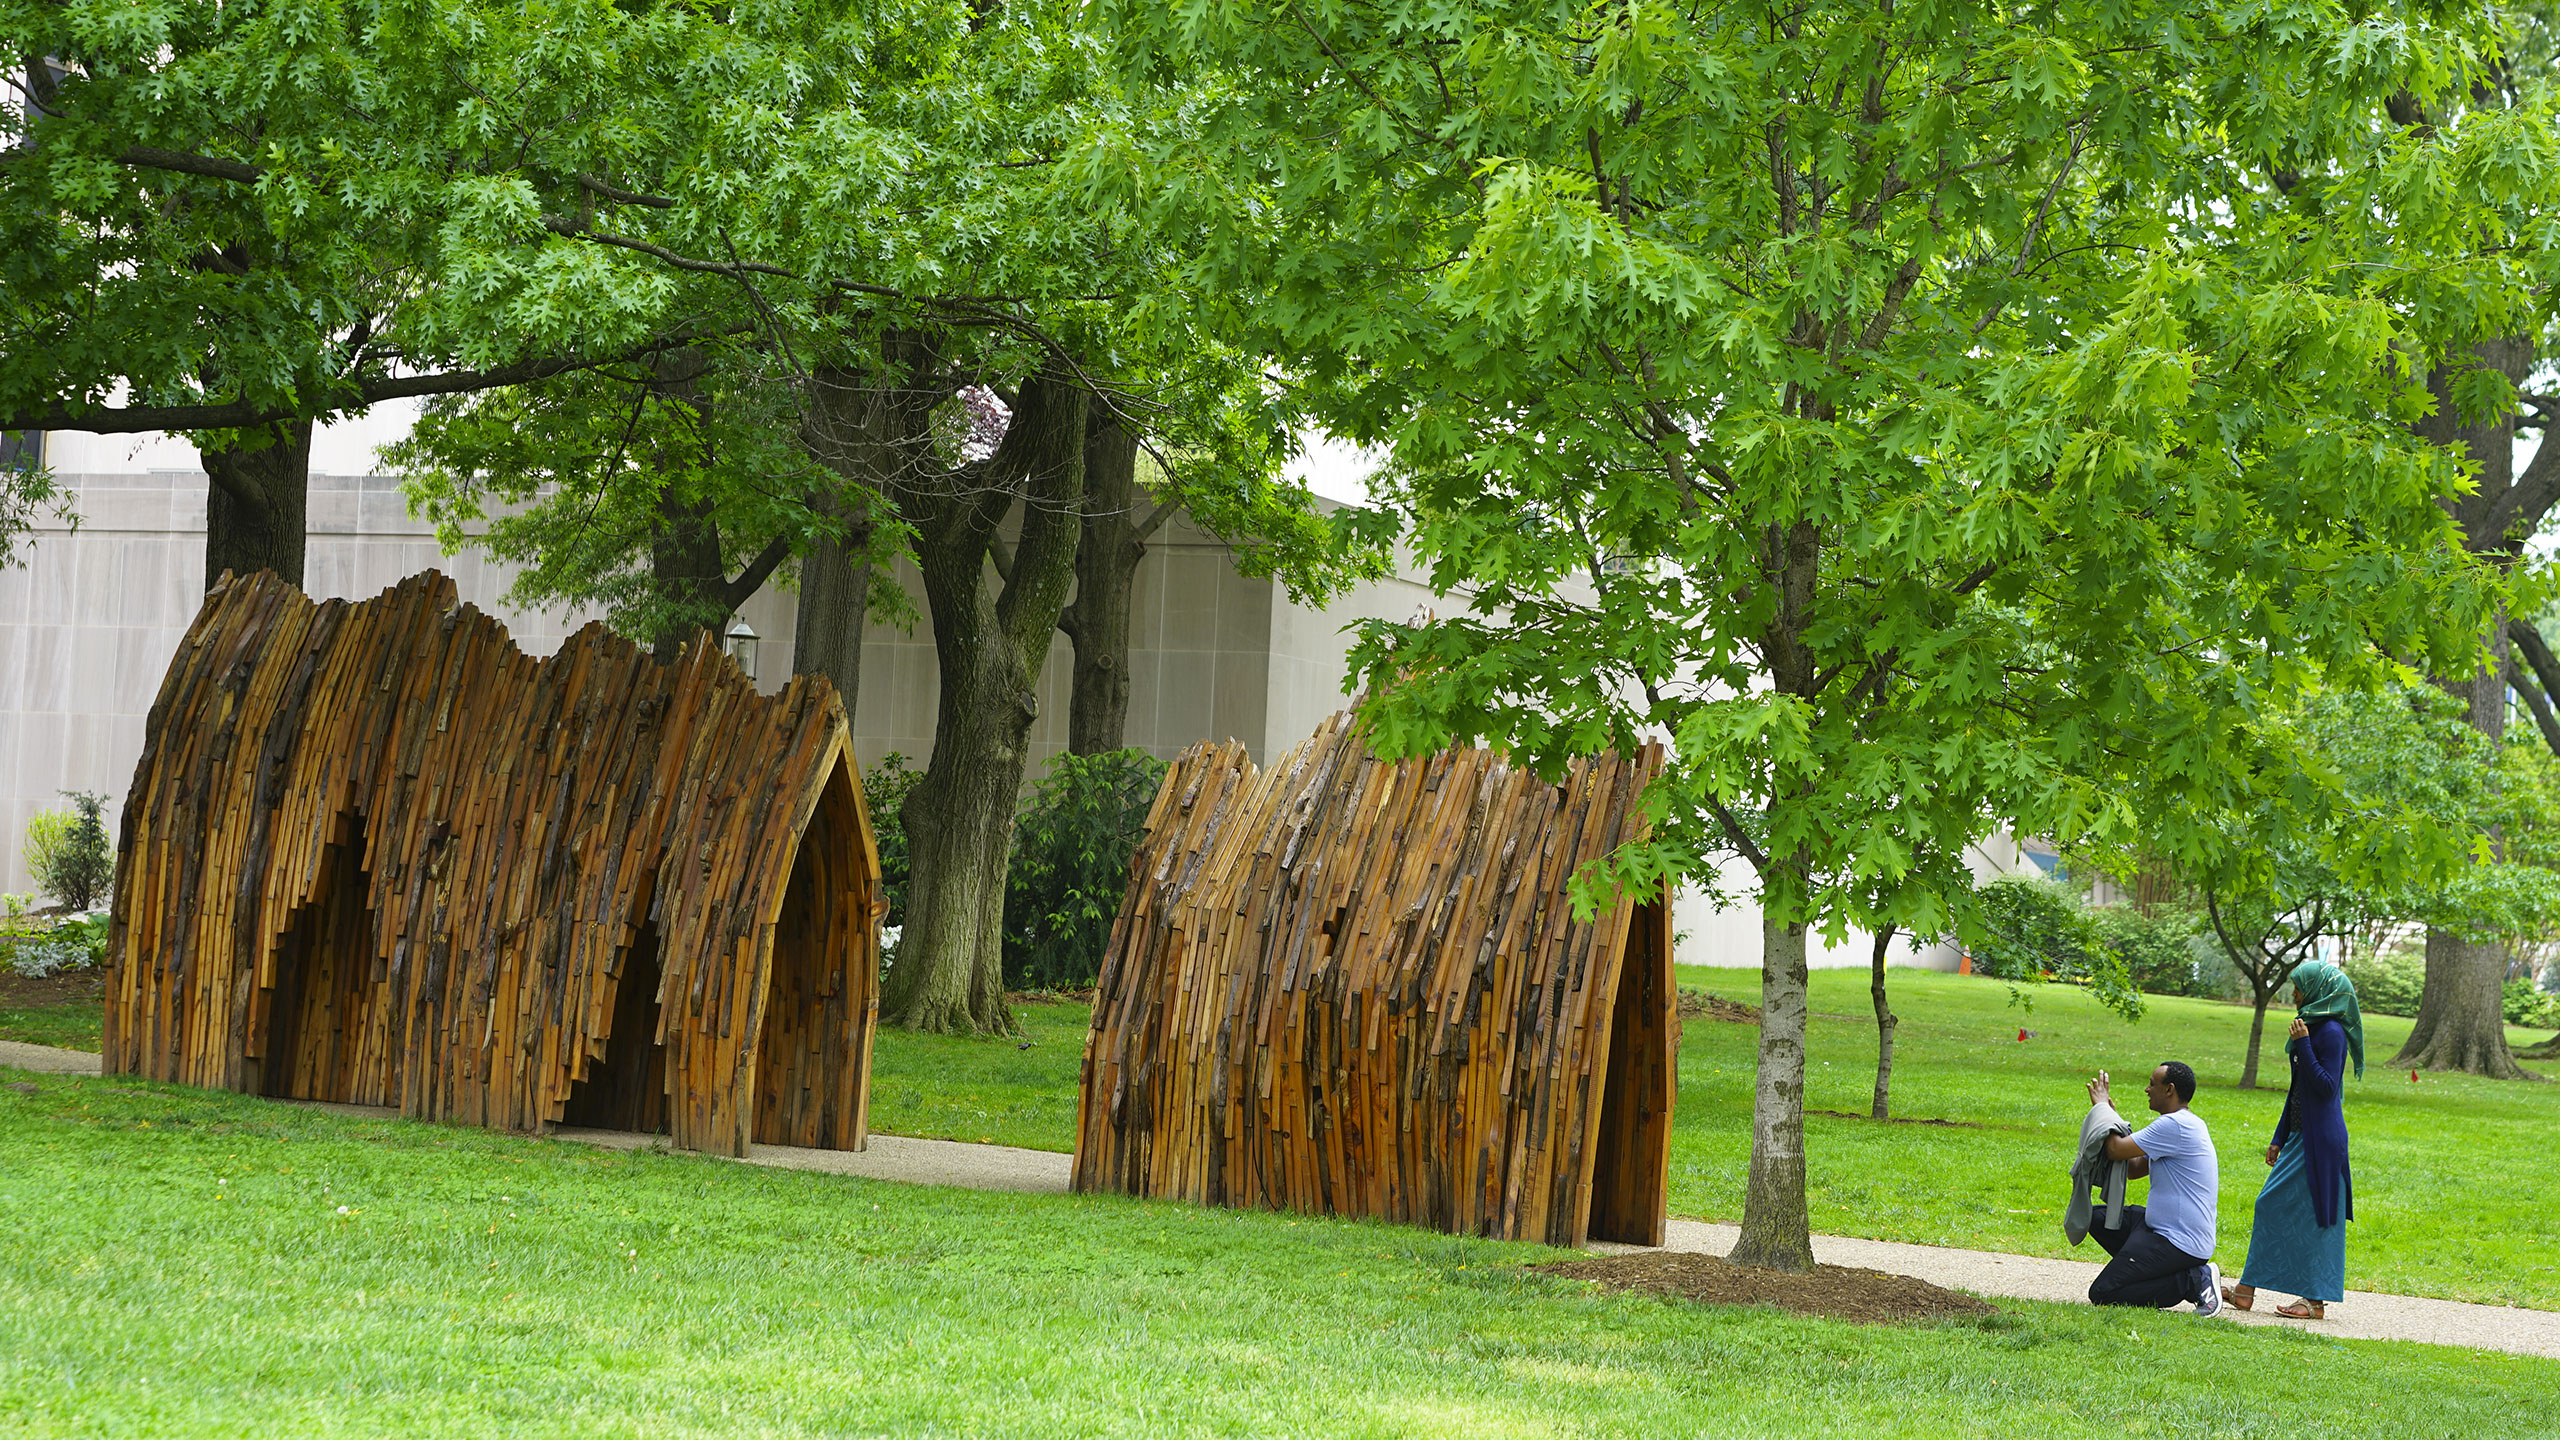 Arches of Life Sculpture by Foon Sham outside of the National Museum of American History